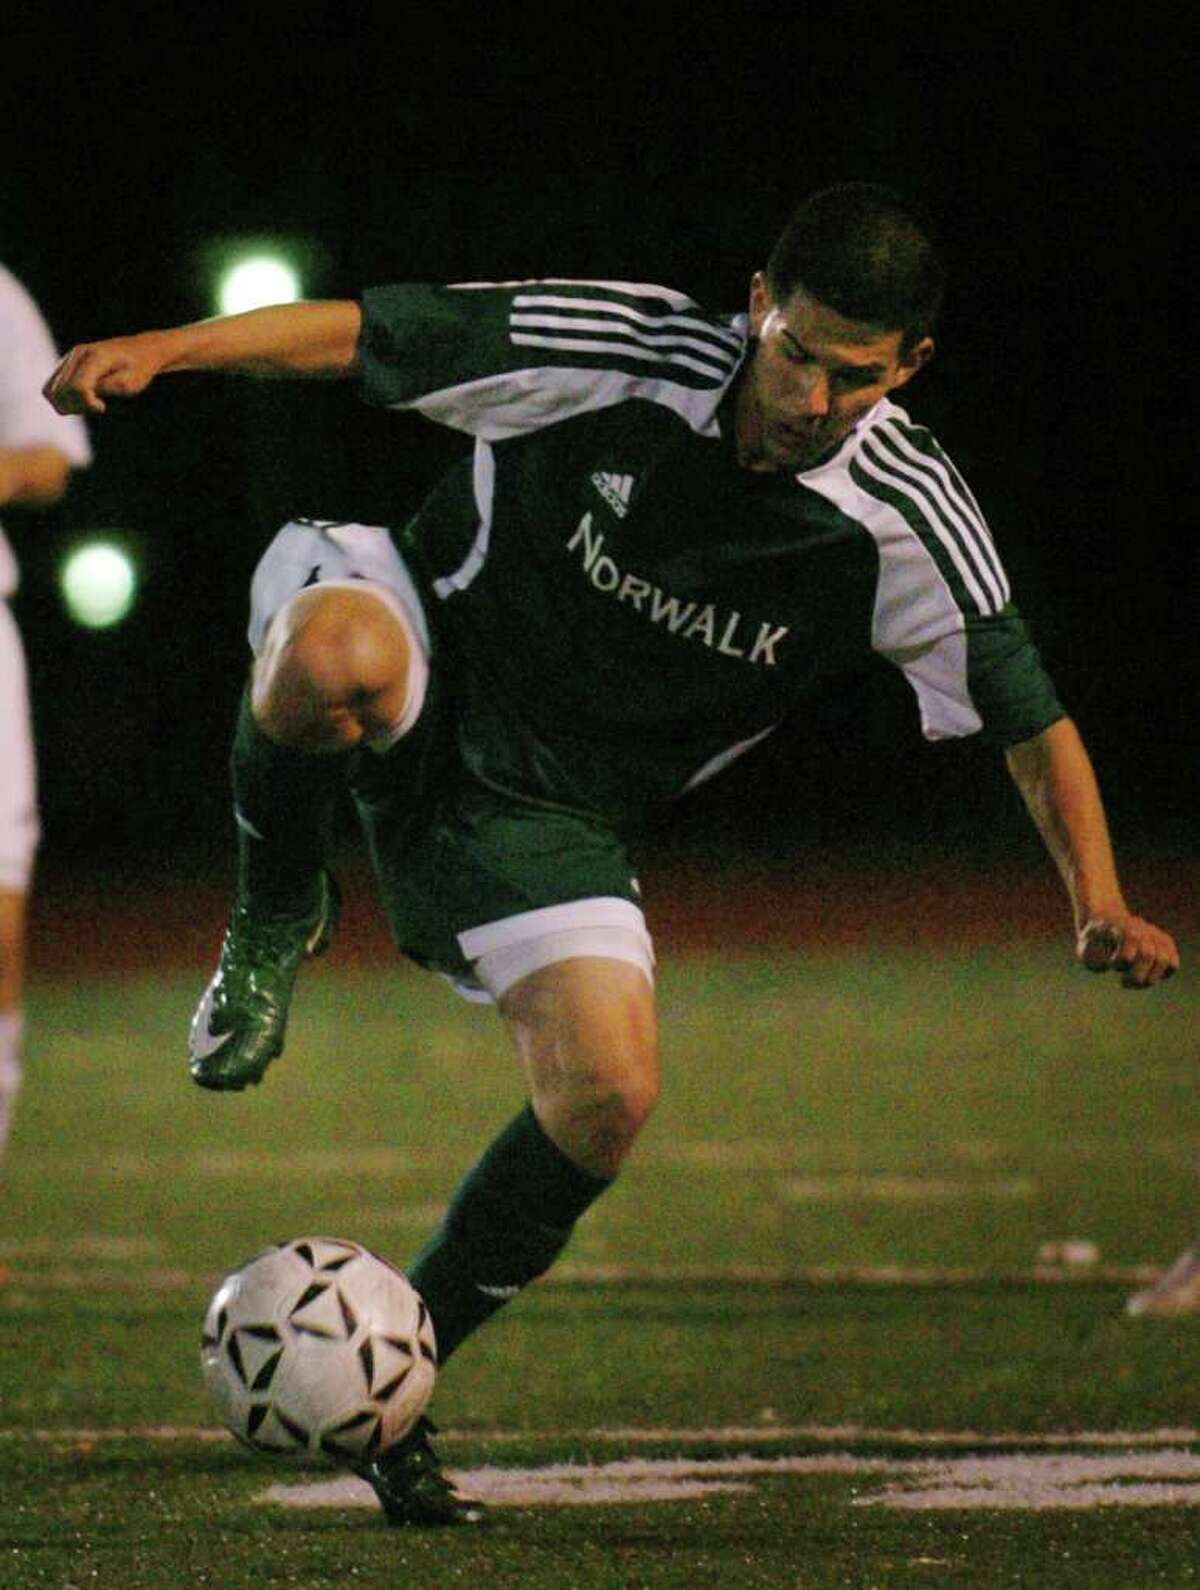 Norwalk's Andres Torres plays the ball during the 2008 FCIAC soccer semifinals at Ludlowe High School in Fairfield.